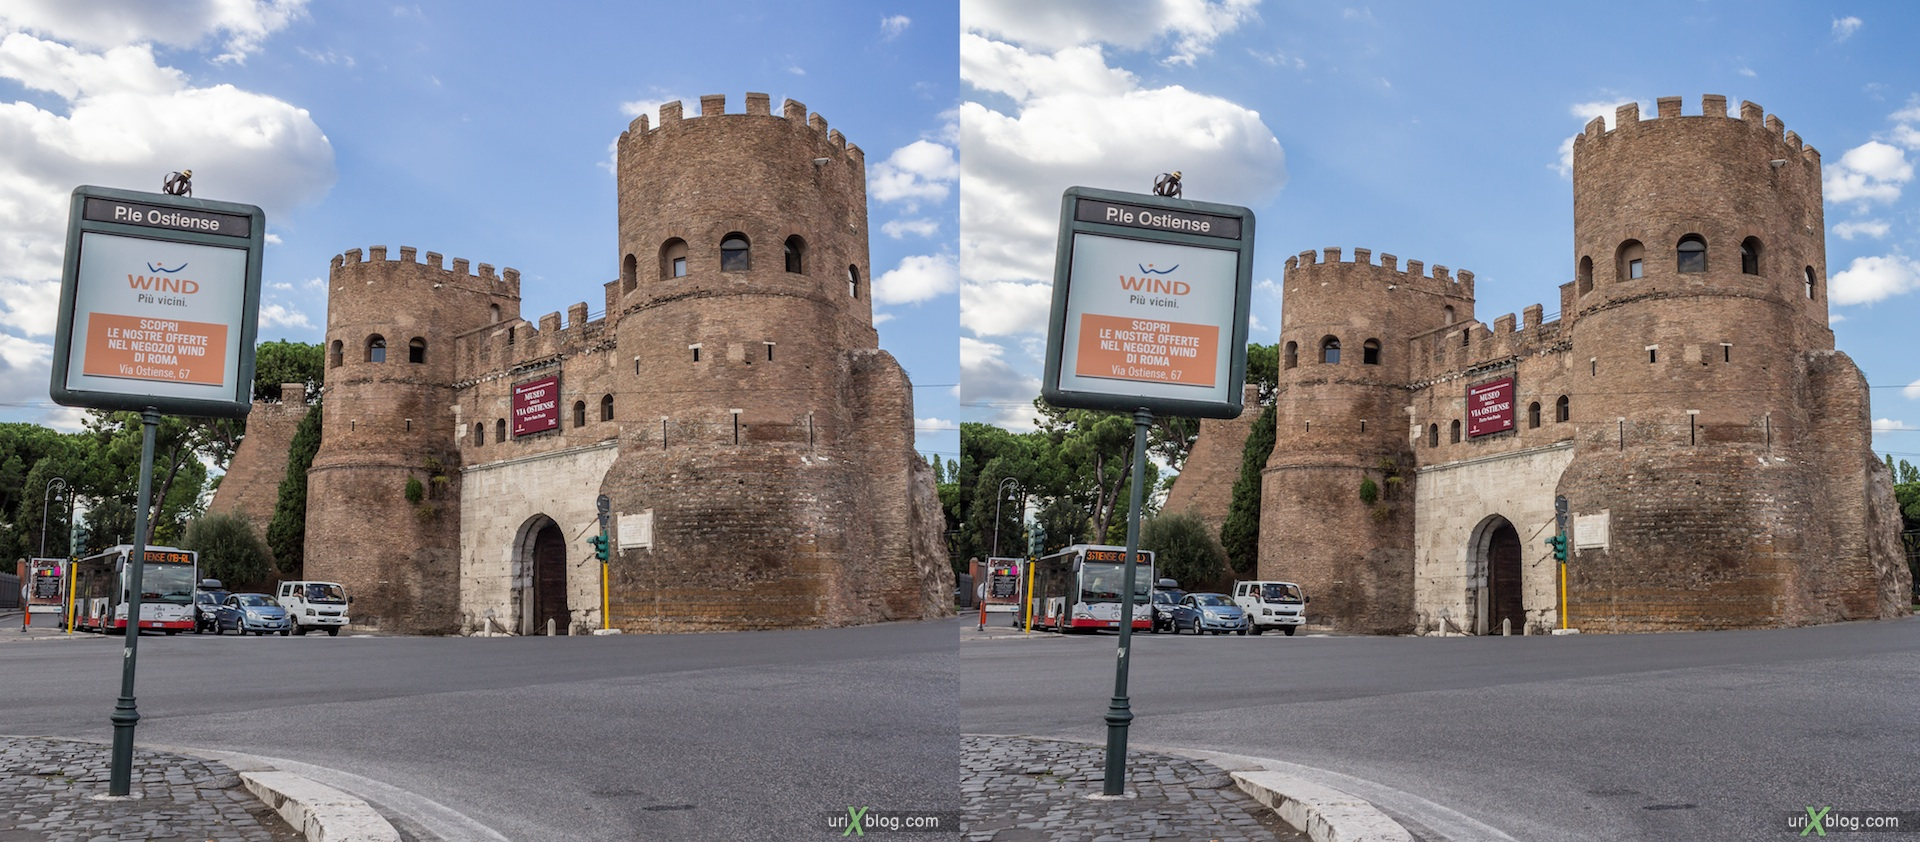 2012, Porta San Paolo gate, Pyramid of Cestius, Rome, Italy, Europe, 3D, stereo pair, cross-eyed, crossview, cross view stereo pair